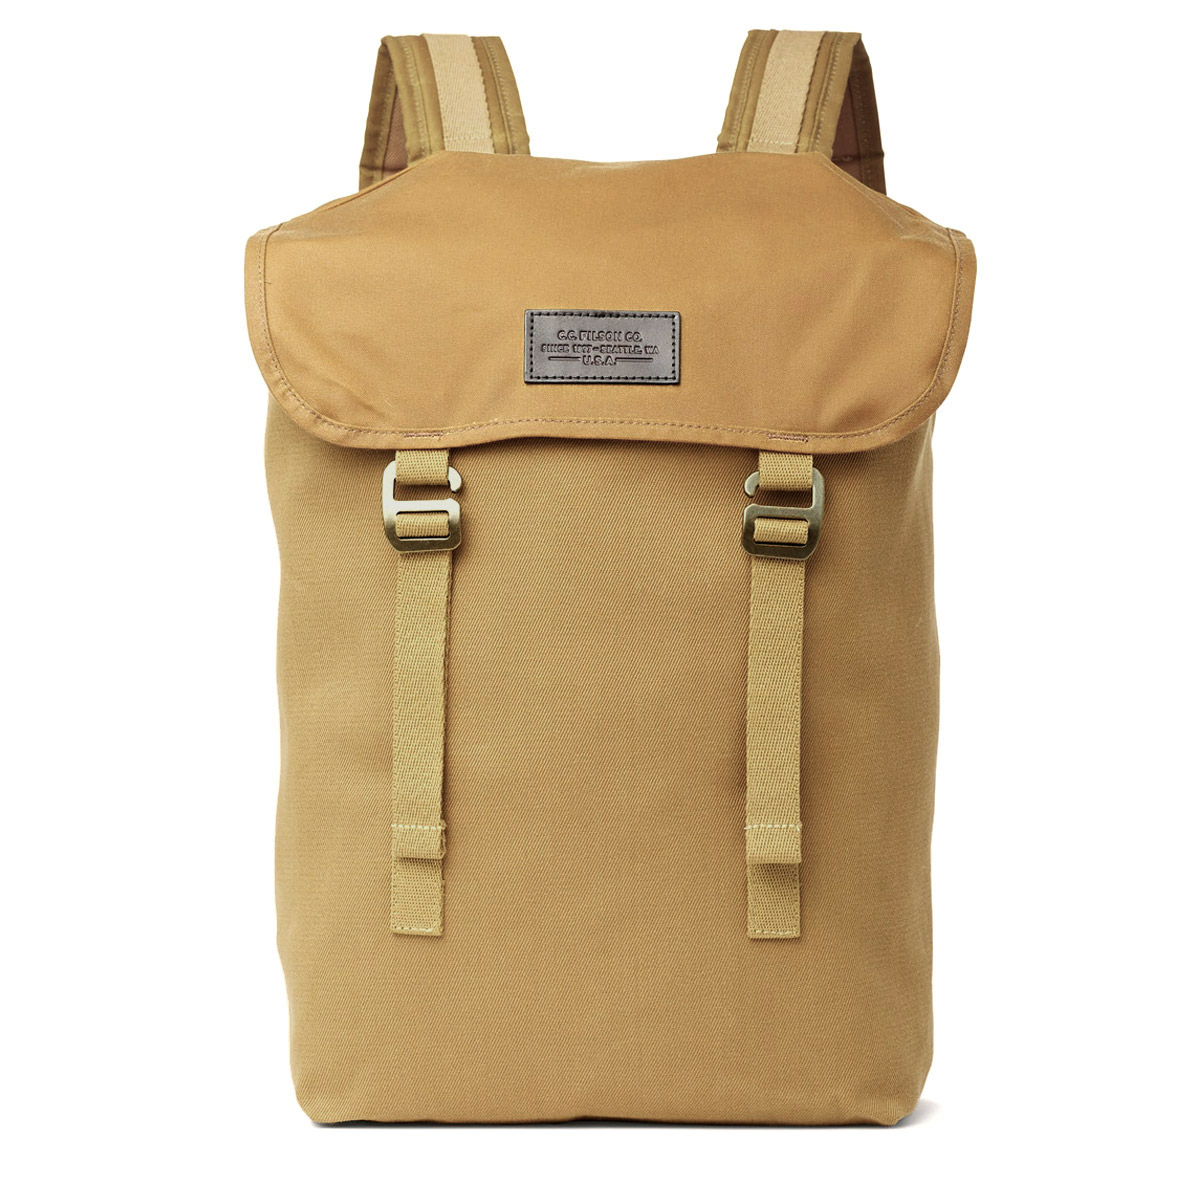 Filson Rugged Twill Ranger Backpack 20137828-Tan